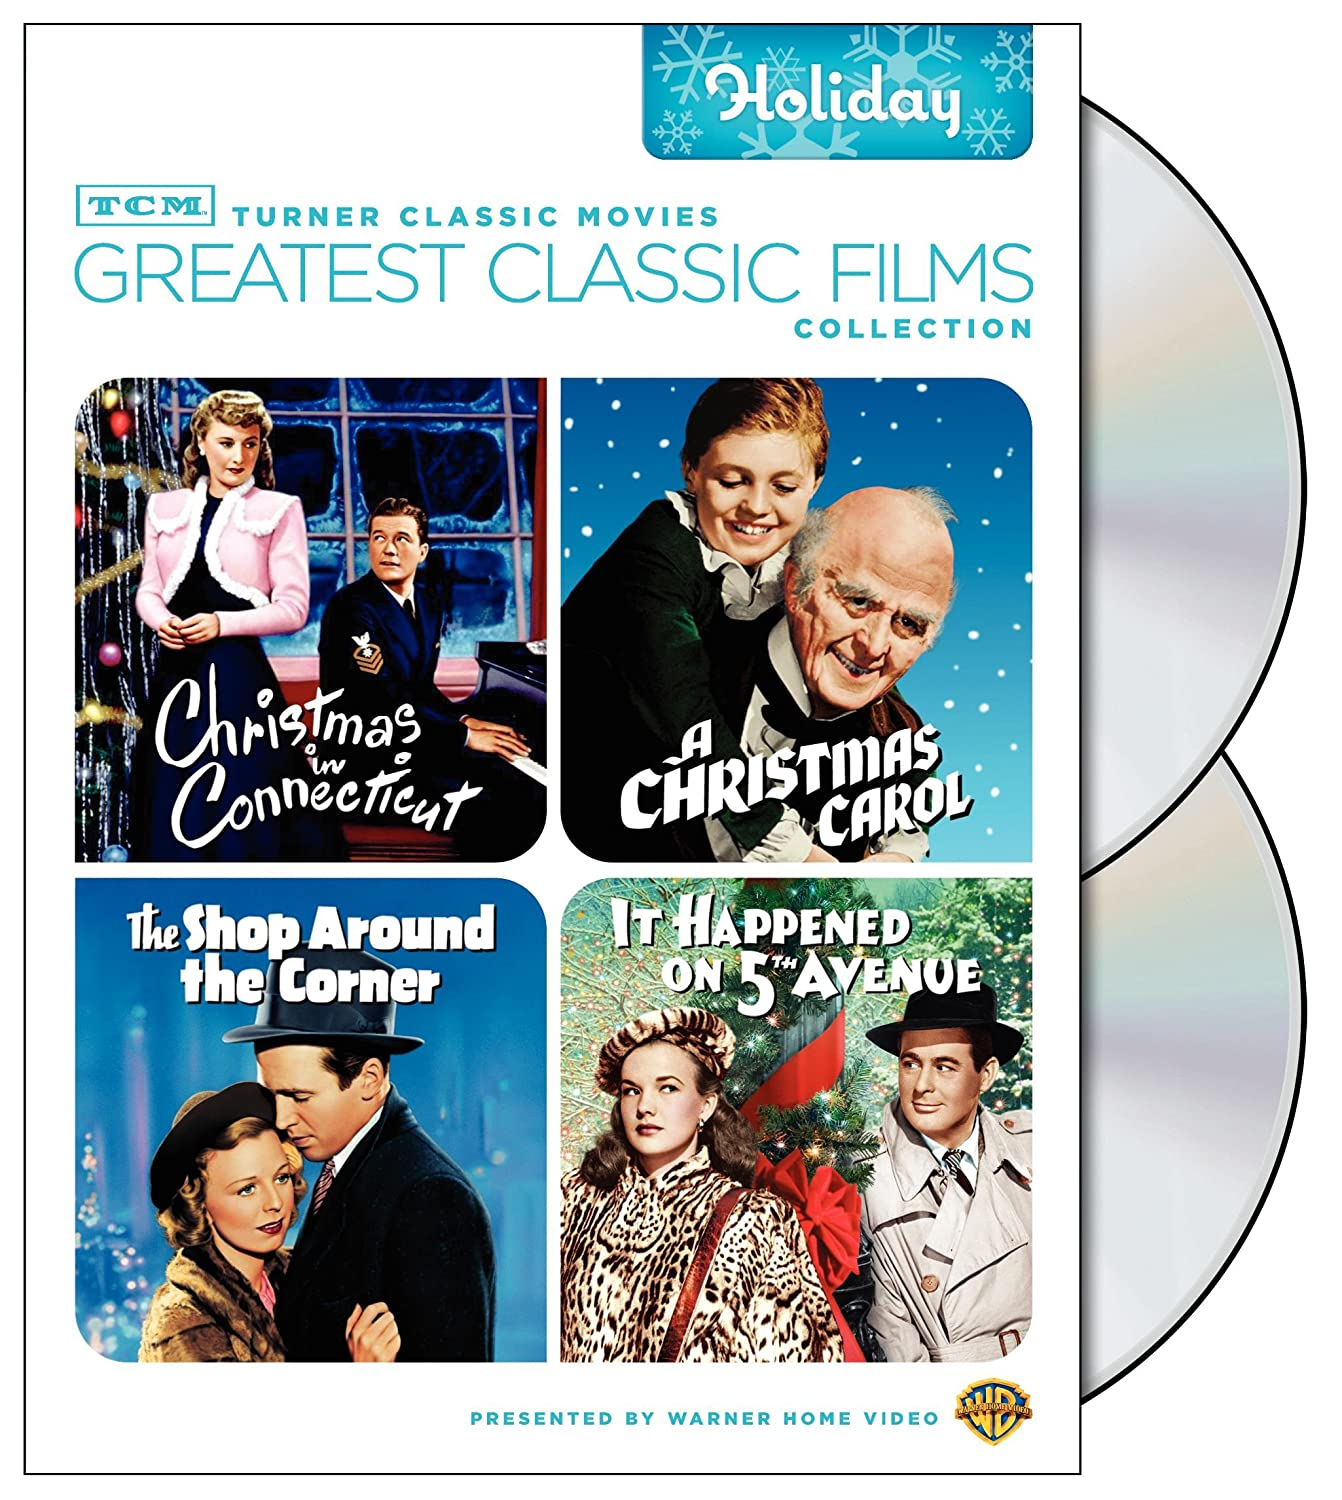 TCM Greatest Classic Films Collection: Holiday (Christmas in Connecticut / A Christmas Carol 1938 / The Shop Around the Corner / It Happened on 5th Avenue)